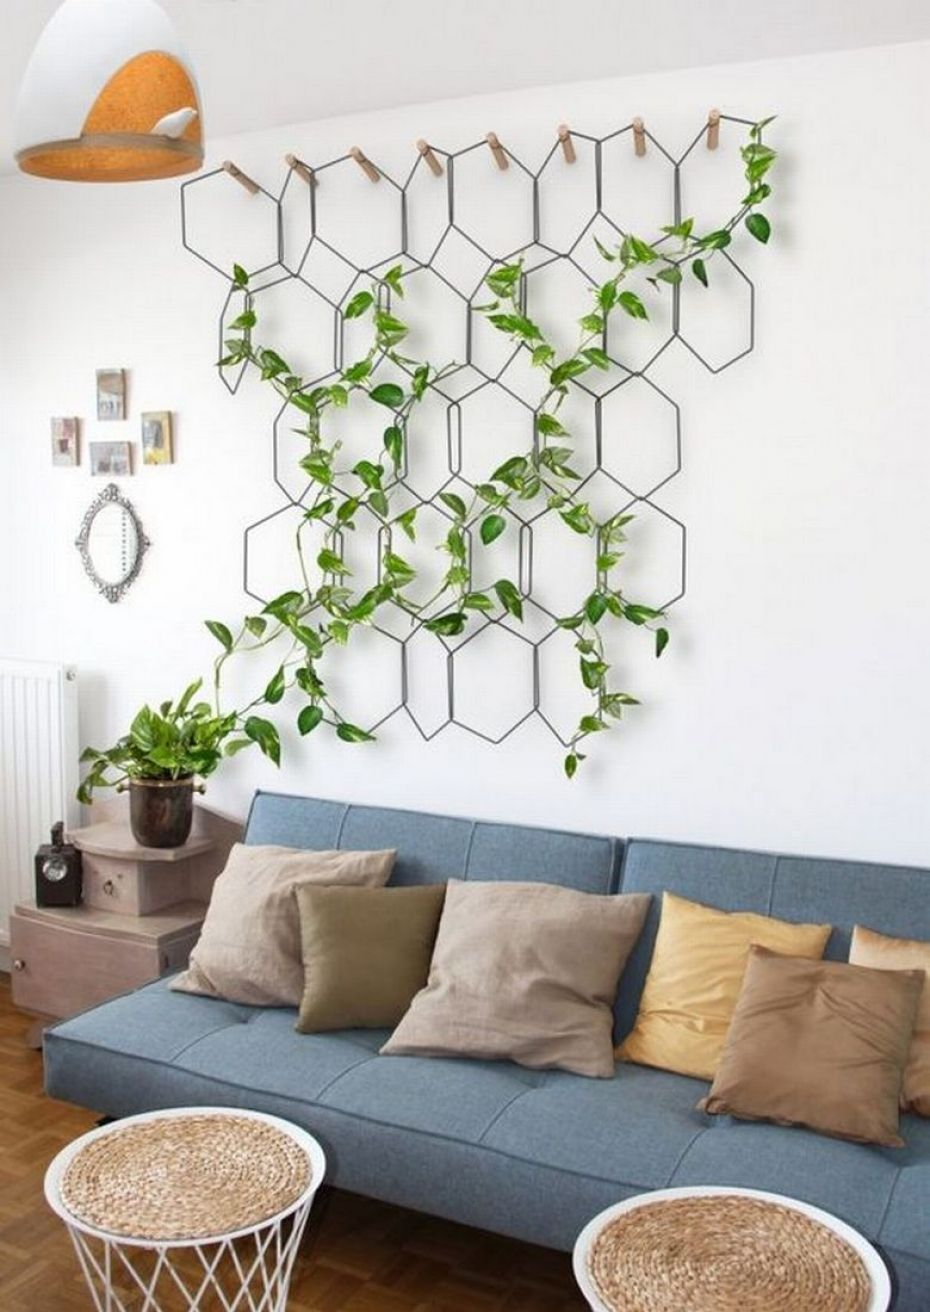 Living room decoration with a climbing plant installed in a rhombic metal structure on a blue armchair with brown cushions